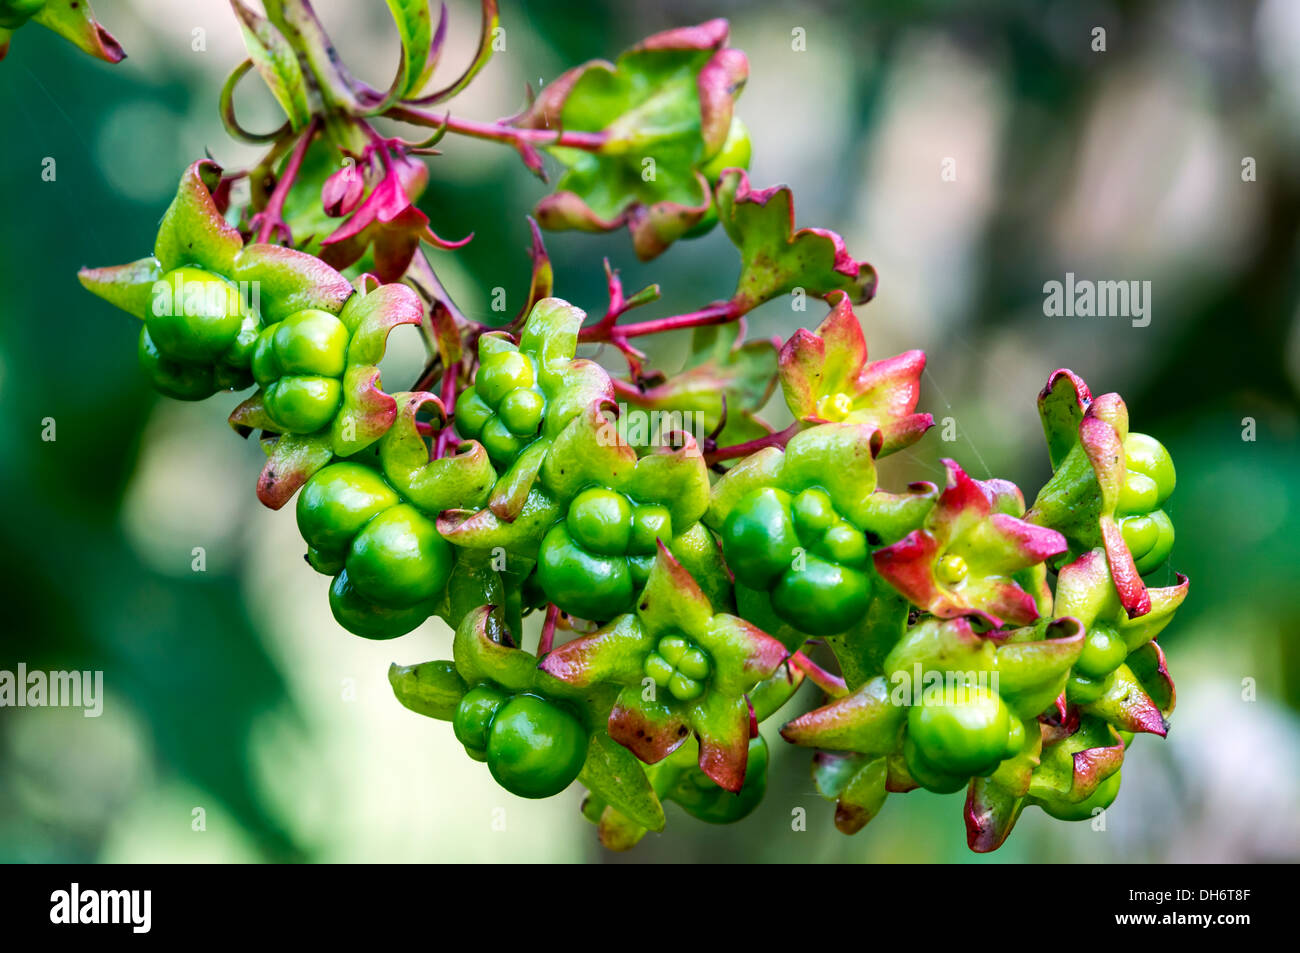 Harlequin Glory Bower (Clerodendrum trichotomum) or Peanut Butter Shrub with green berries and calyxes in North Florida, USA. - Stock Image